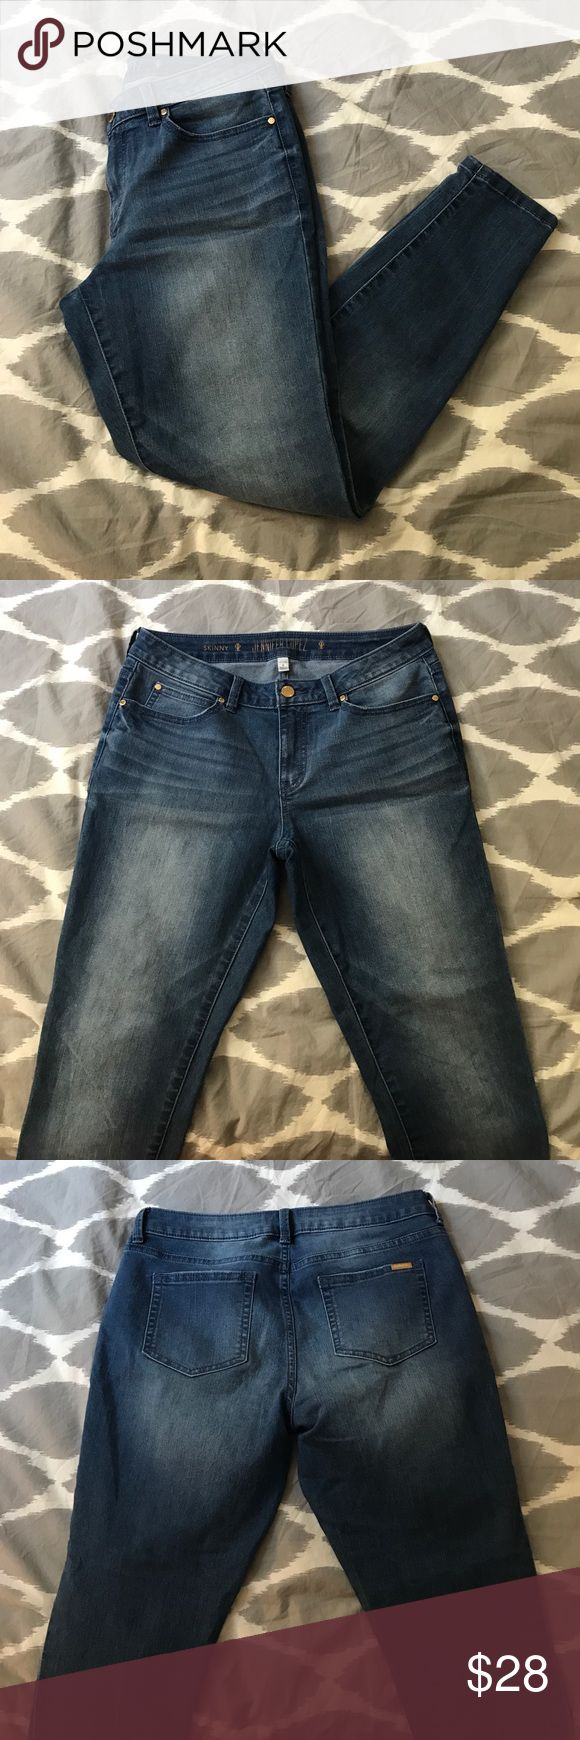 NWOT Jennifer Lopez Jeans NWOT Jennifer Lopez jeans! Great wash that goes with everything! Inseam is 26 inches. Jennifer Lopez Jeans Skinny